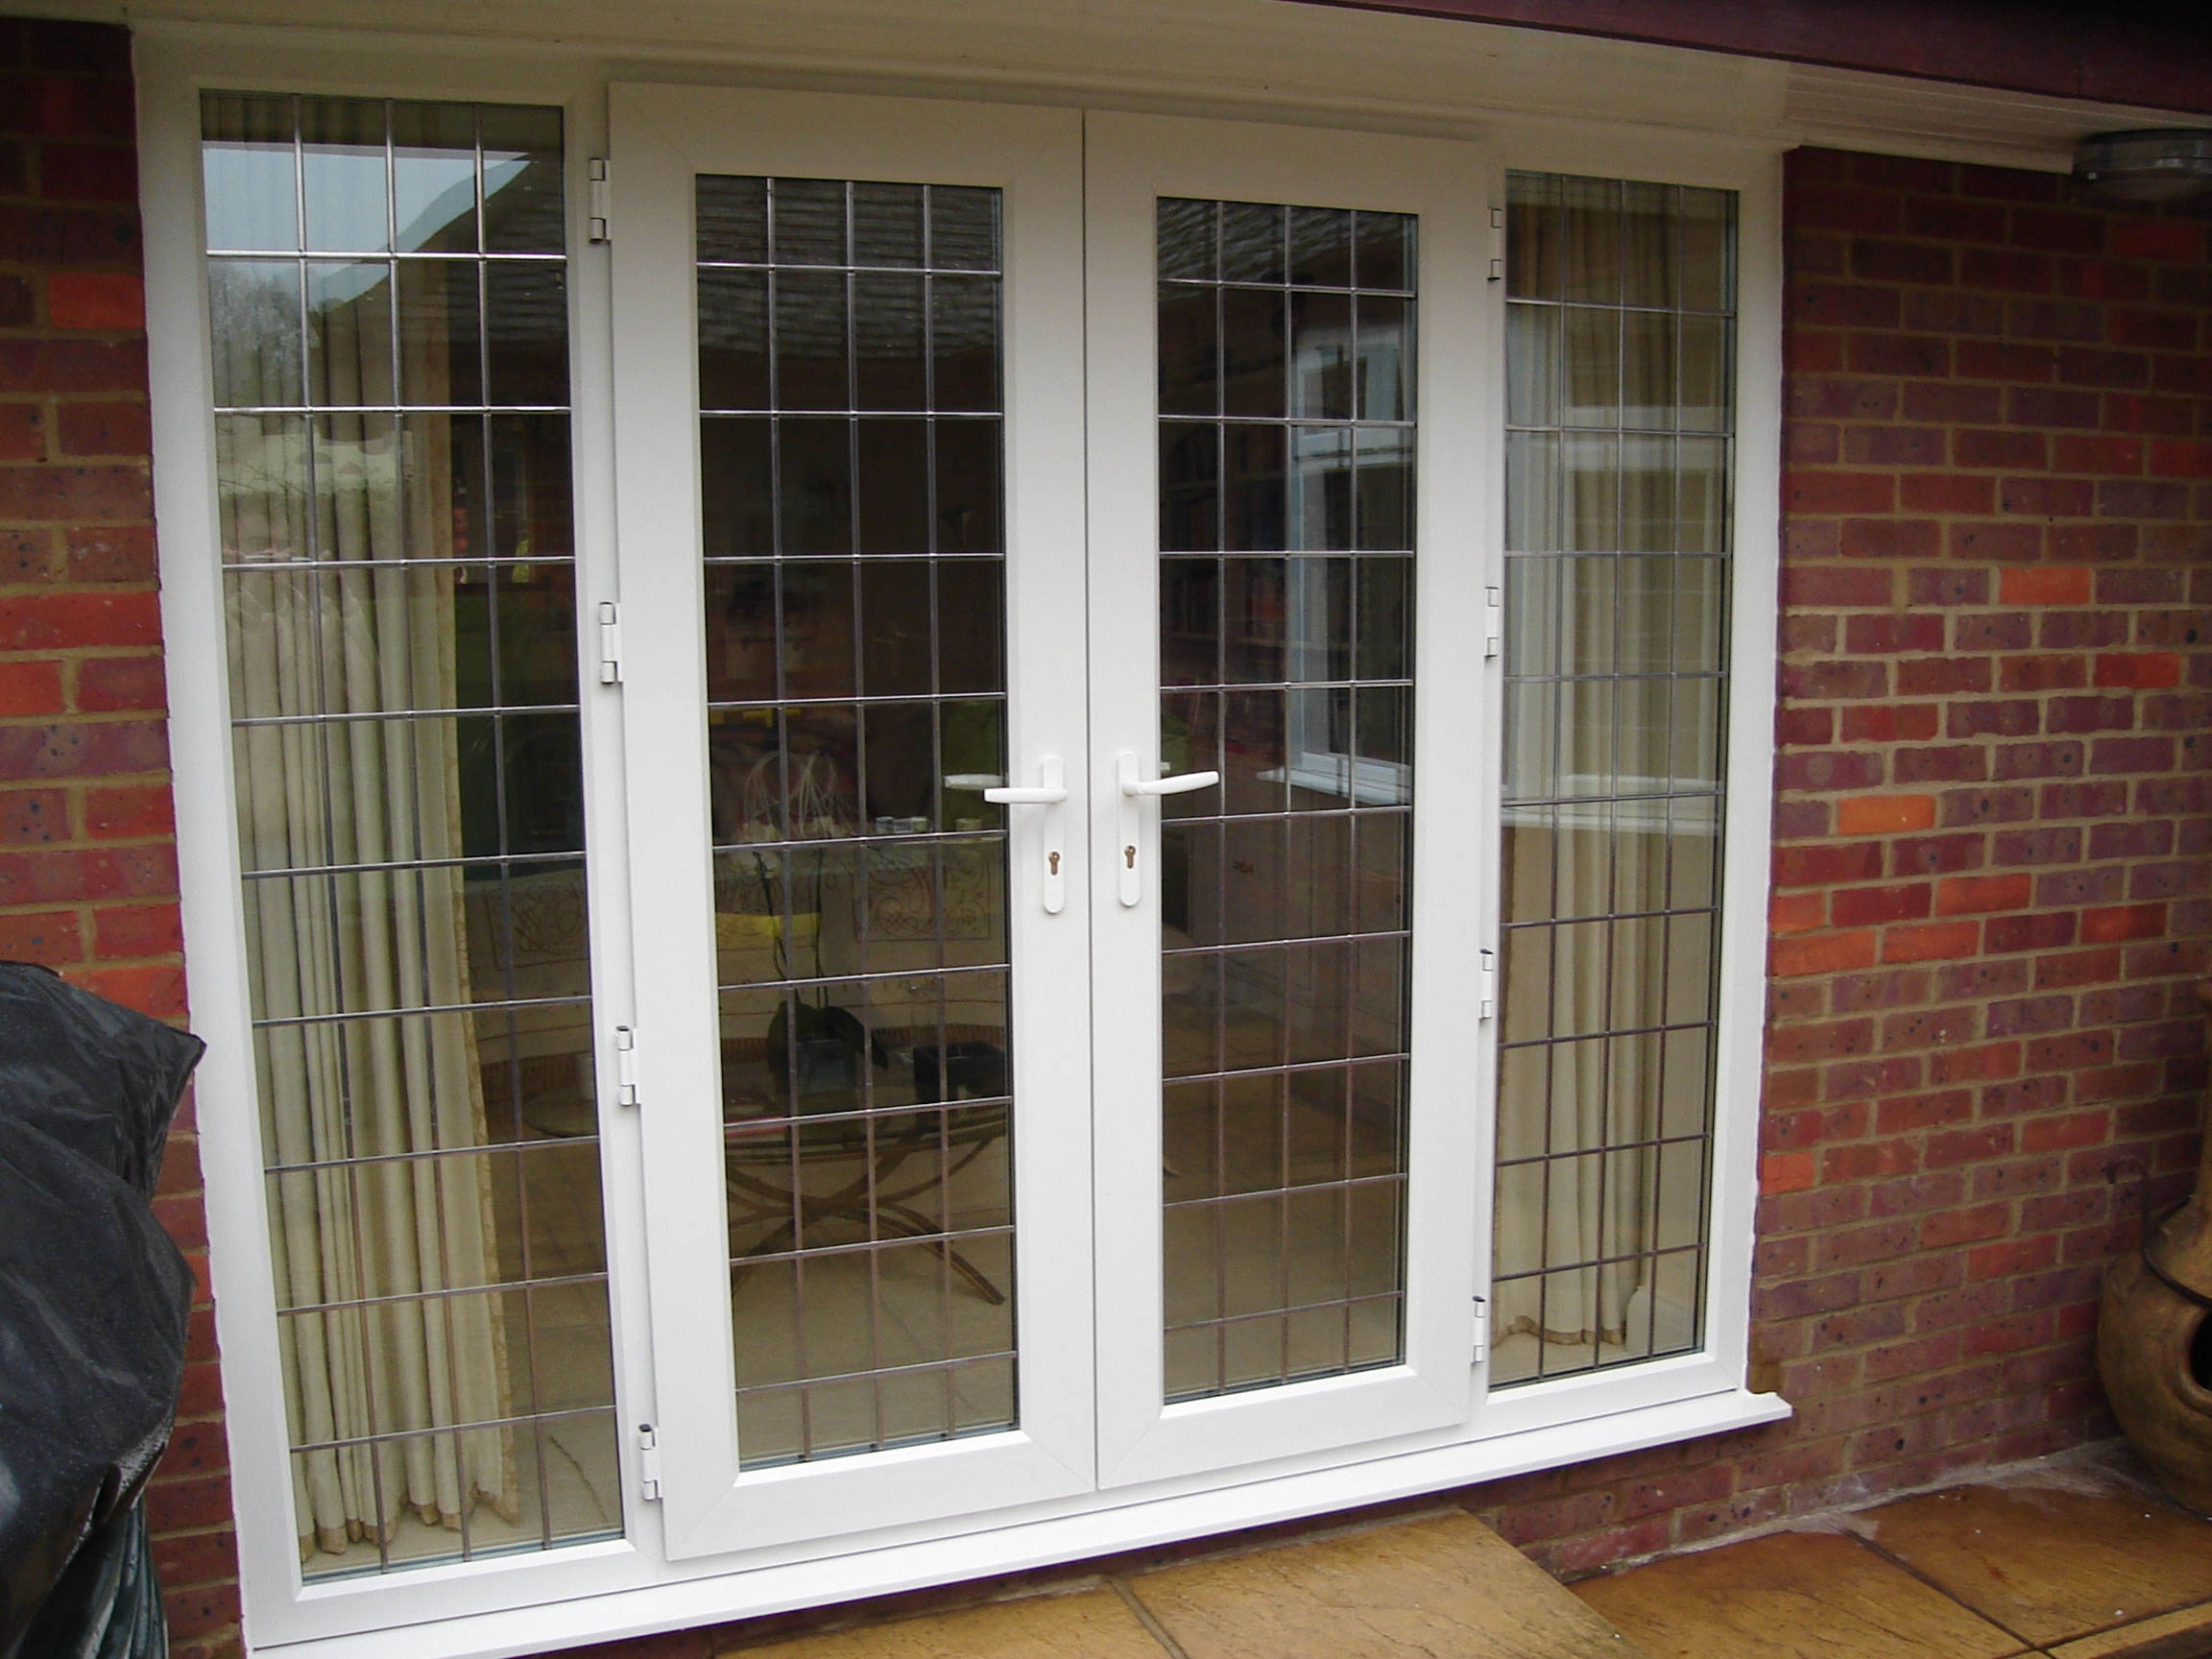 100 Upvc French Doors French Doors Upvc U0026 Aluminium Monarch Aluminium Patio Doors